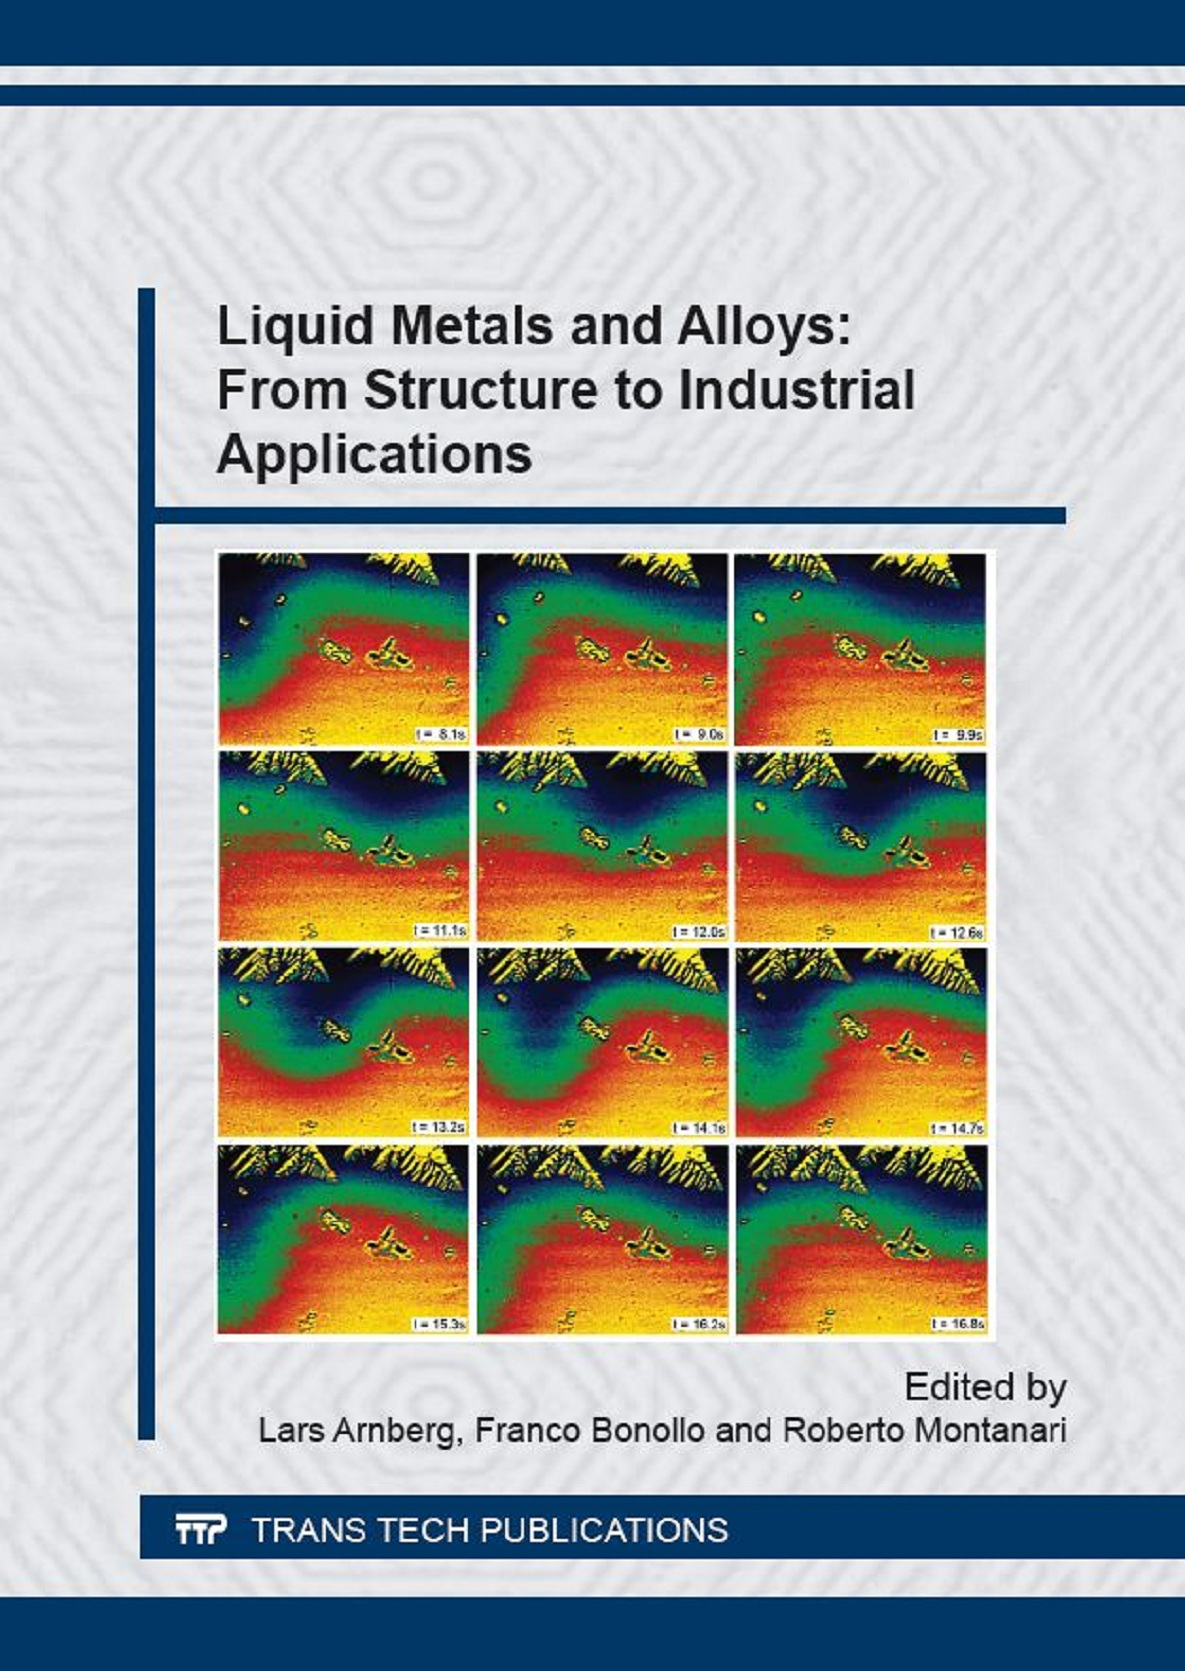 Liquid Metals and Alloys: From Structure to Industrial Applications